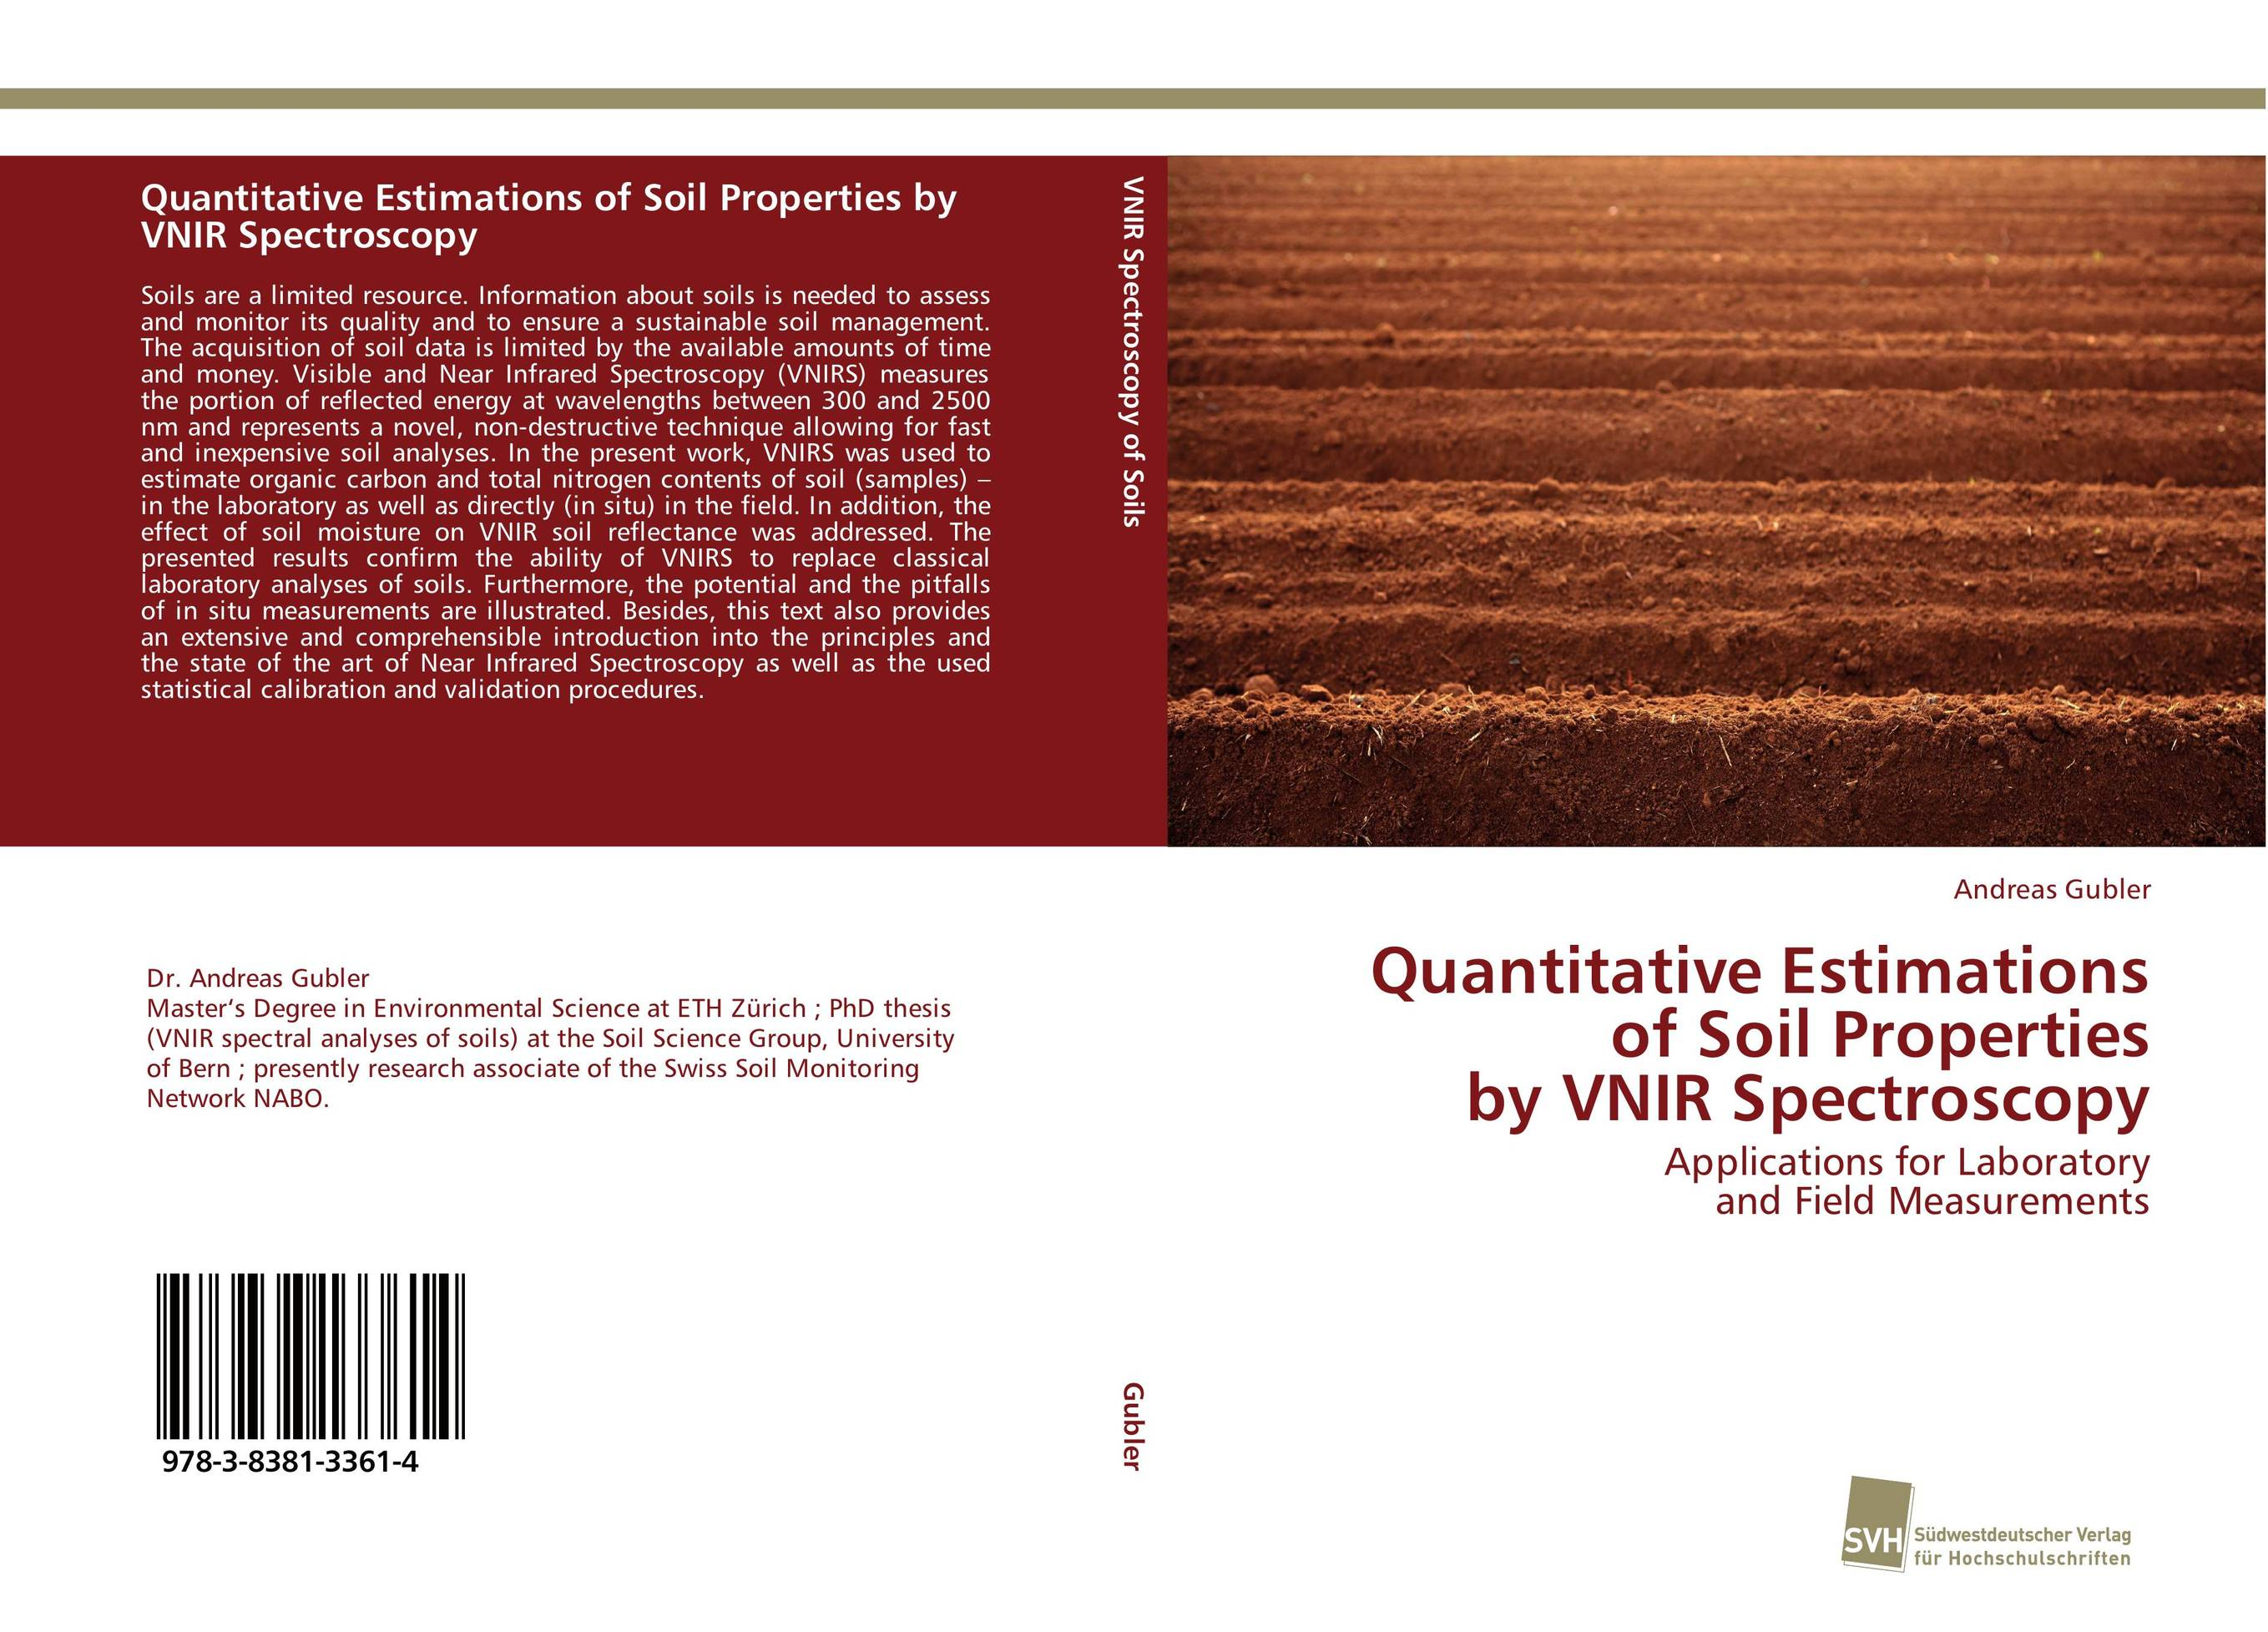 Quantitative Estimations of Soil Properties by VNIR Spectroscopy status of soils and water reservoirs near industrial areas of baroda